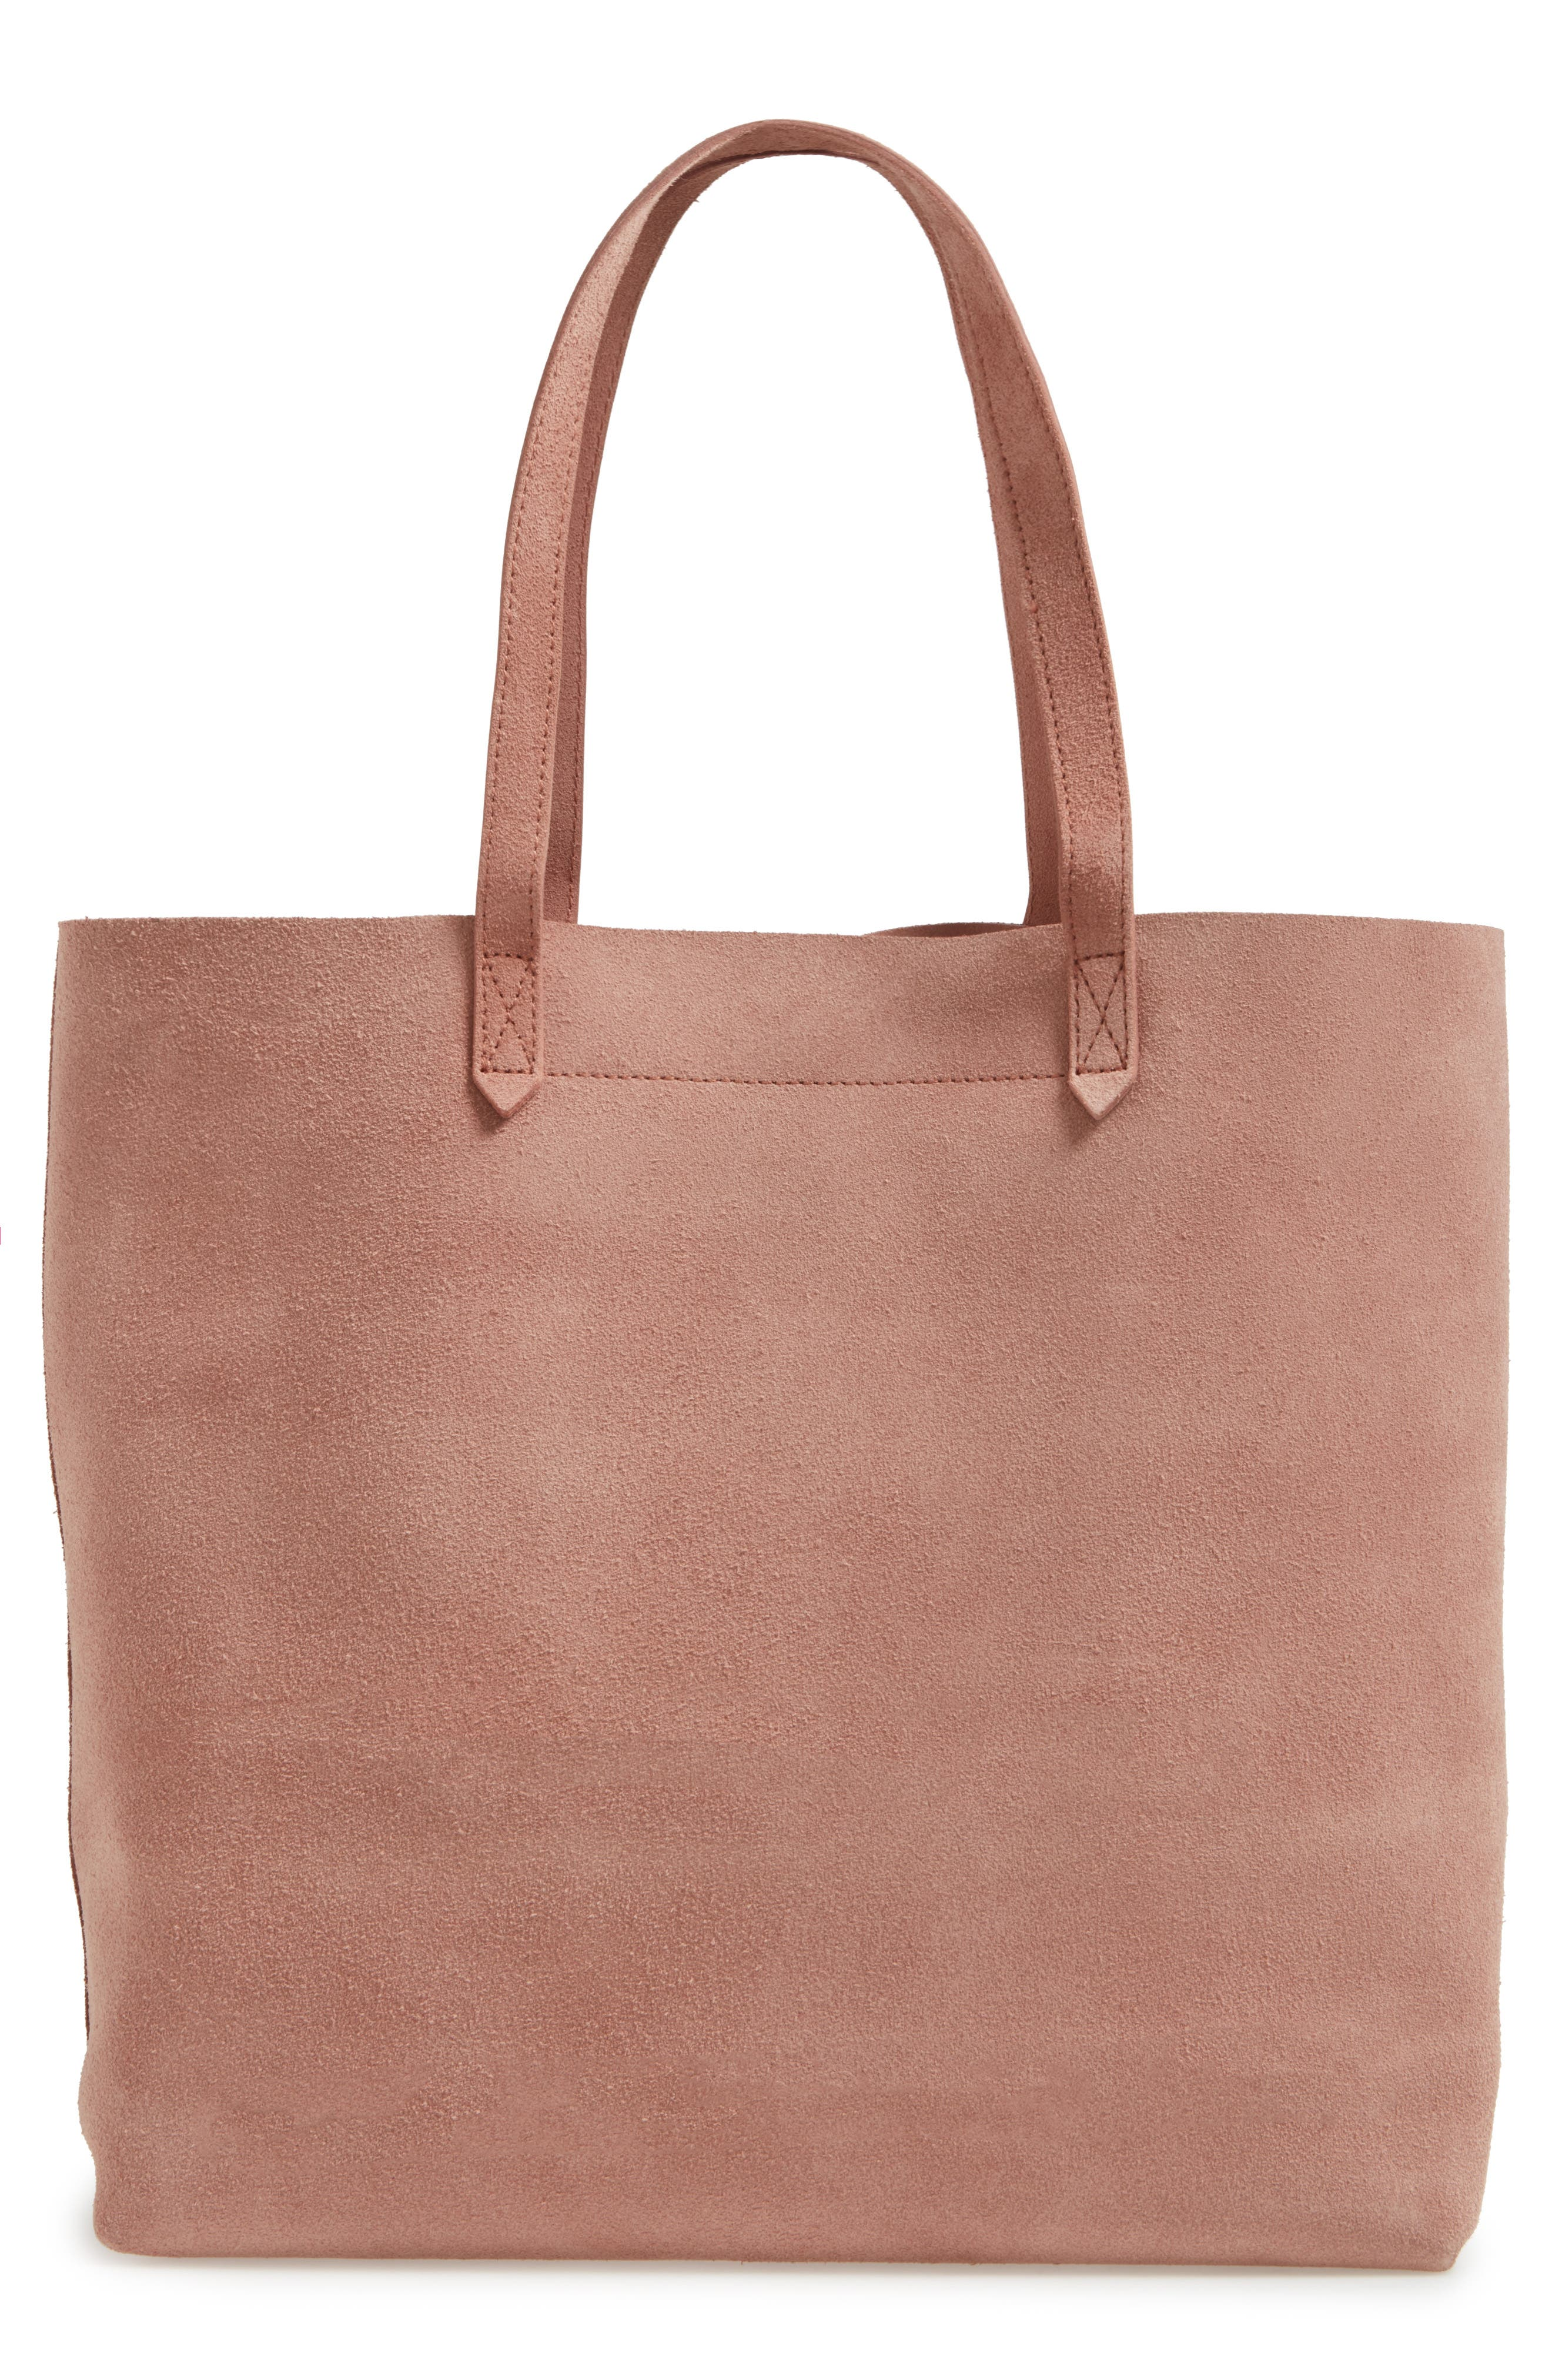 Suede Transport Tote,                             Main thumbnail 1, color,                             250